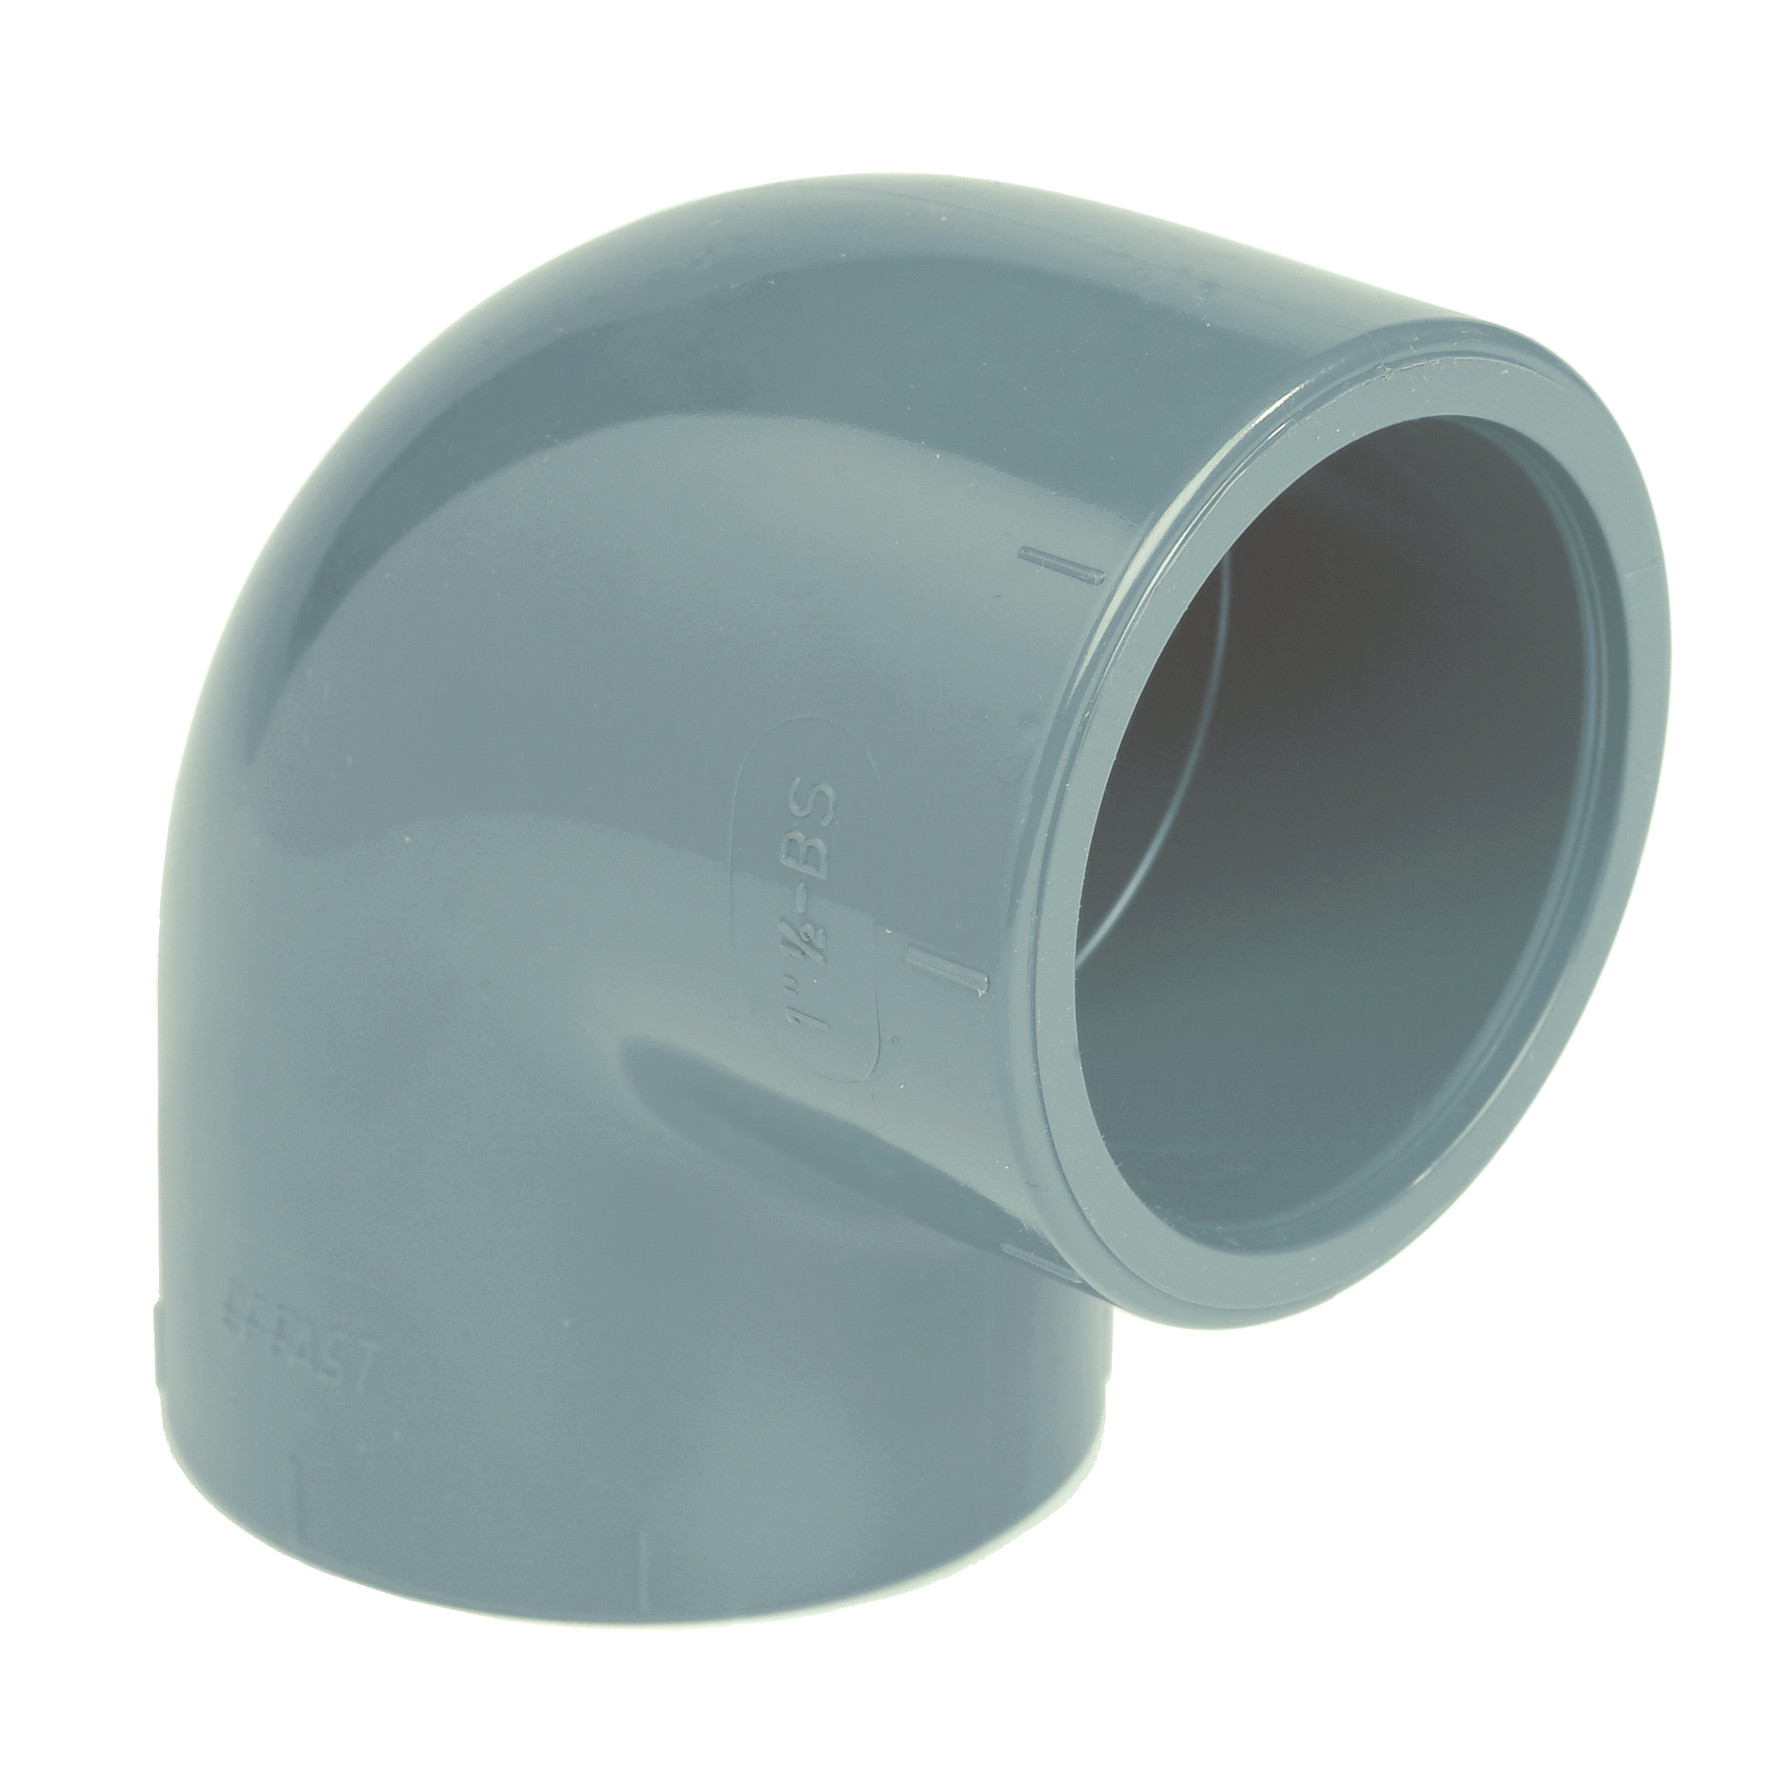 ABS elbow 90° - EFFAST - 100% Made in Italy